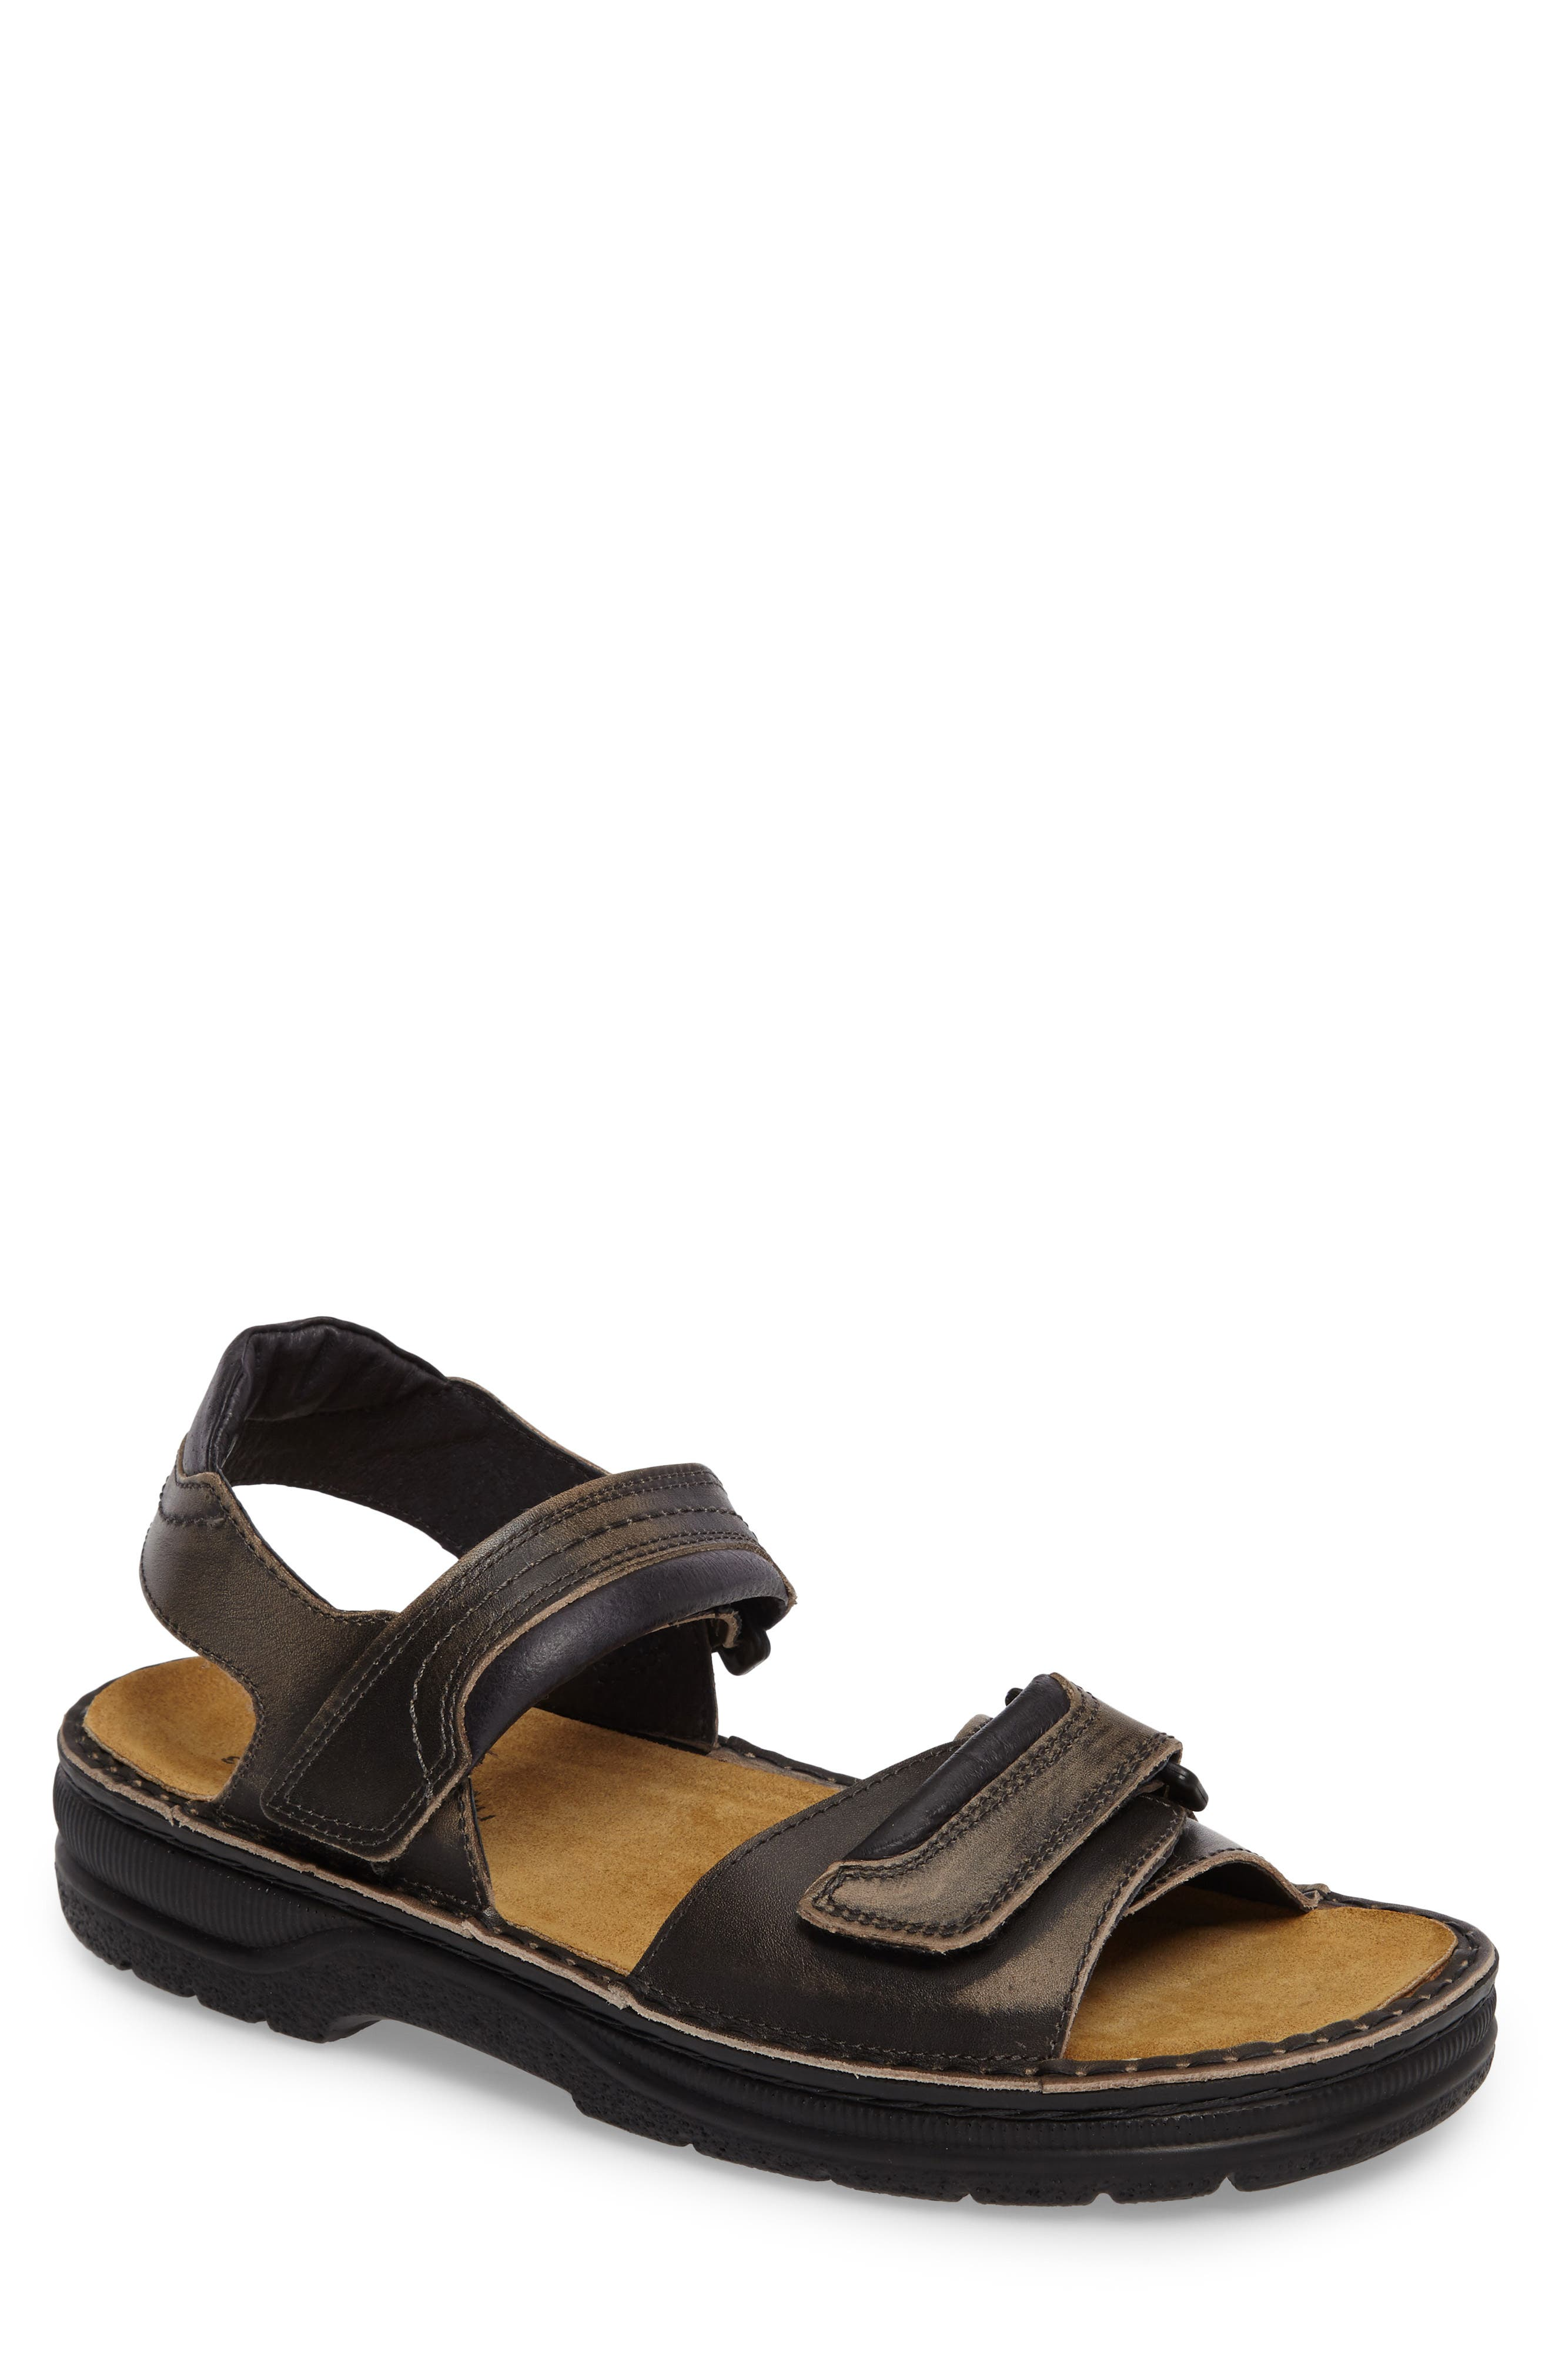 Alternate Image 1 Selected - Naot Lappland Sandal (Men)